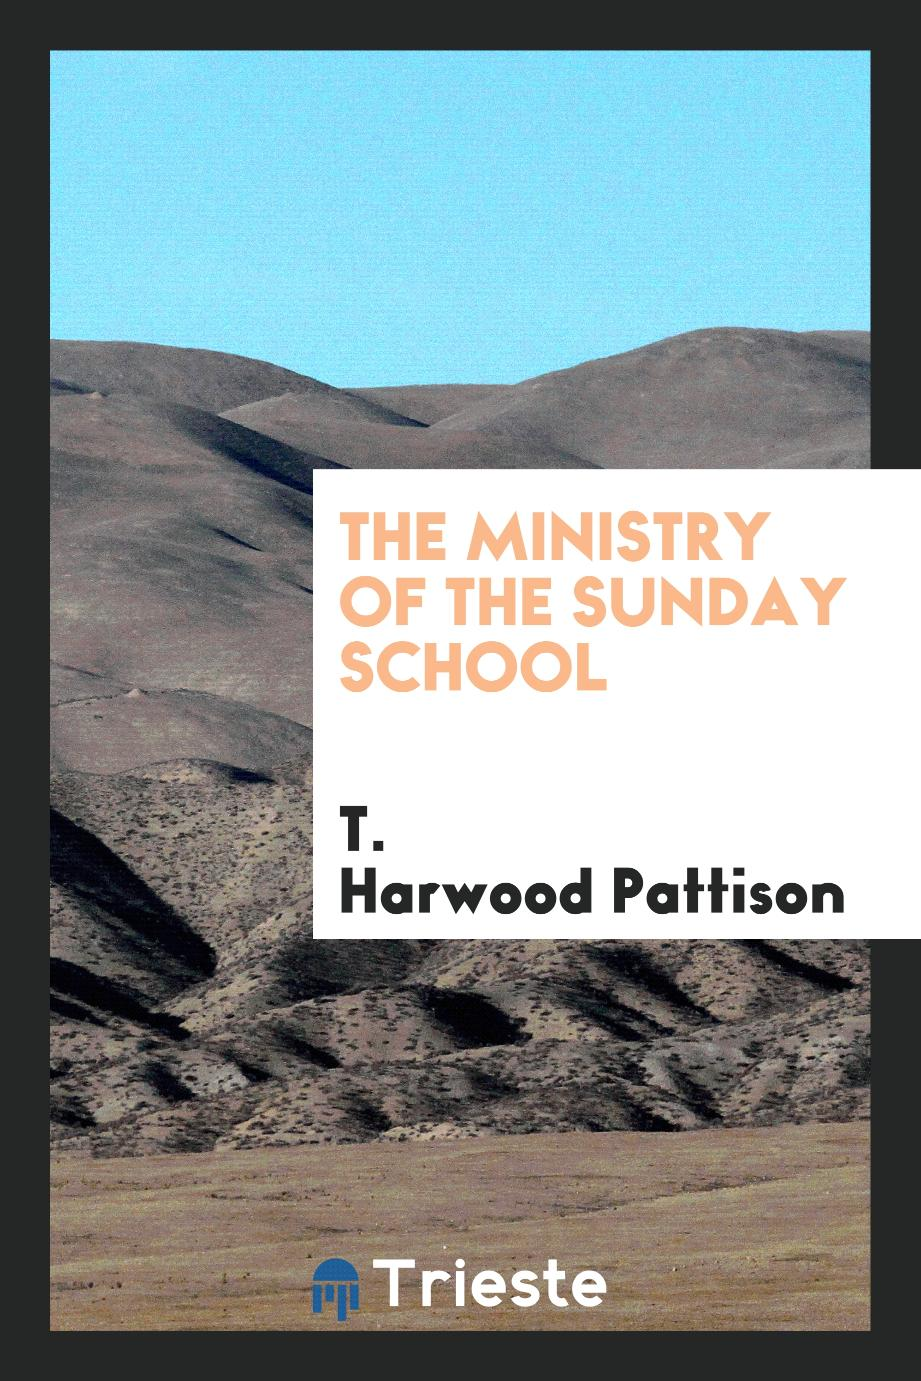 The ministry of the Sunday School